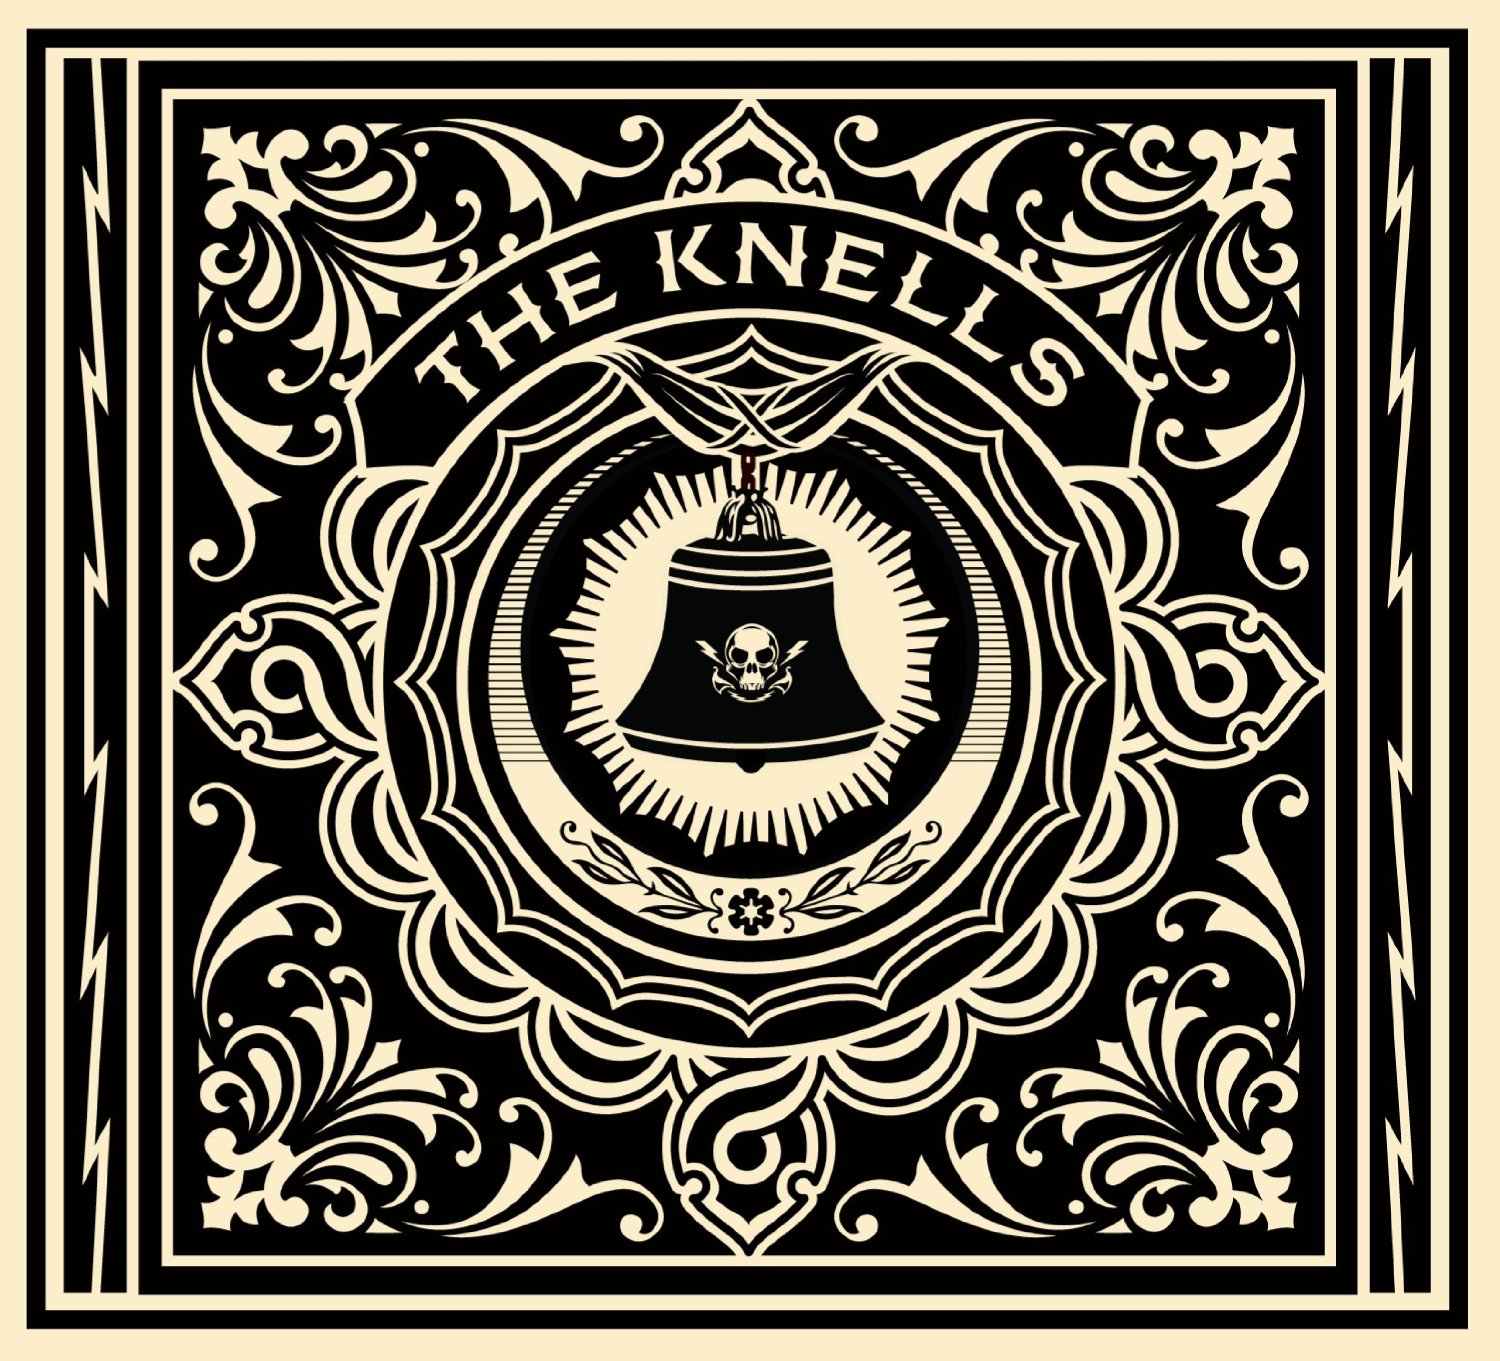 The Knells Cover art